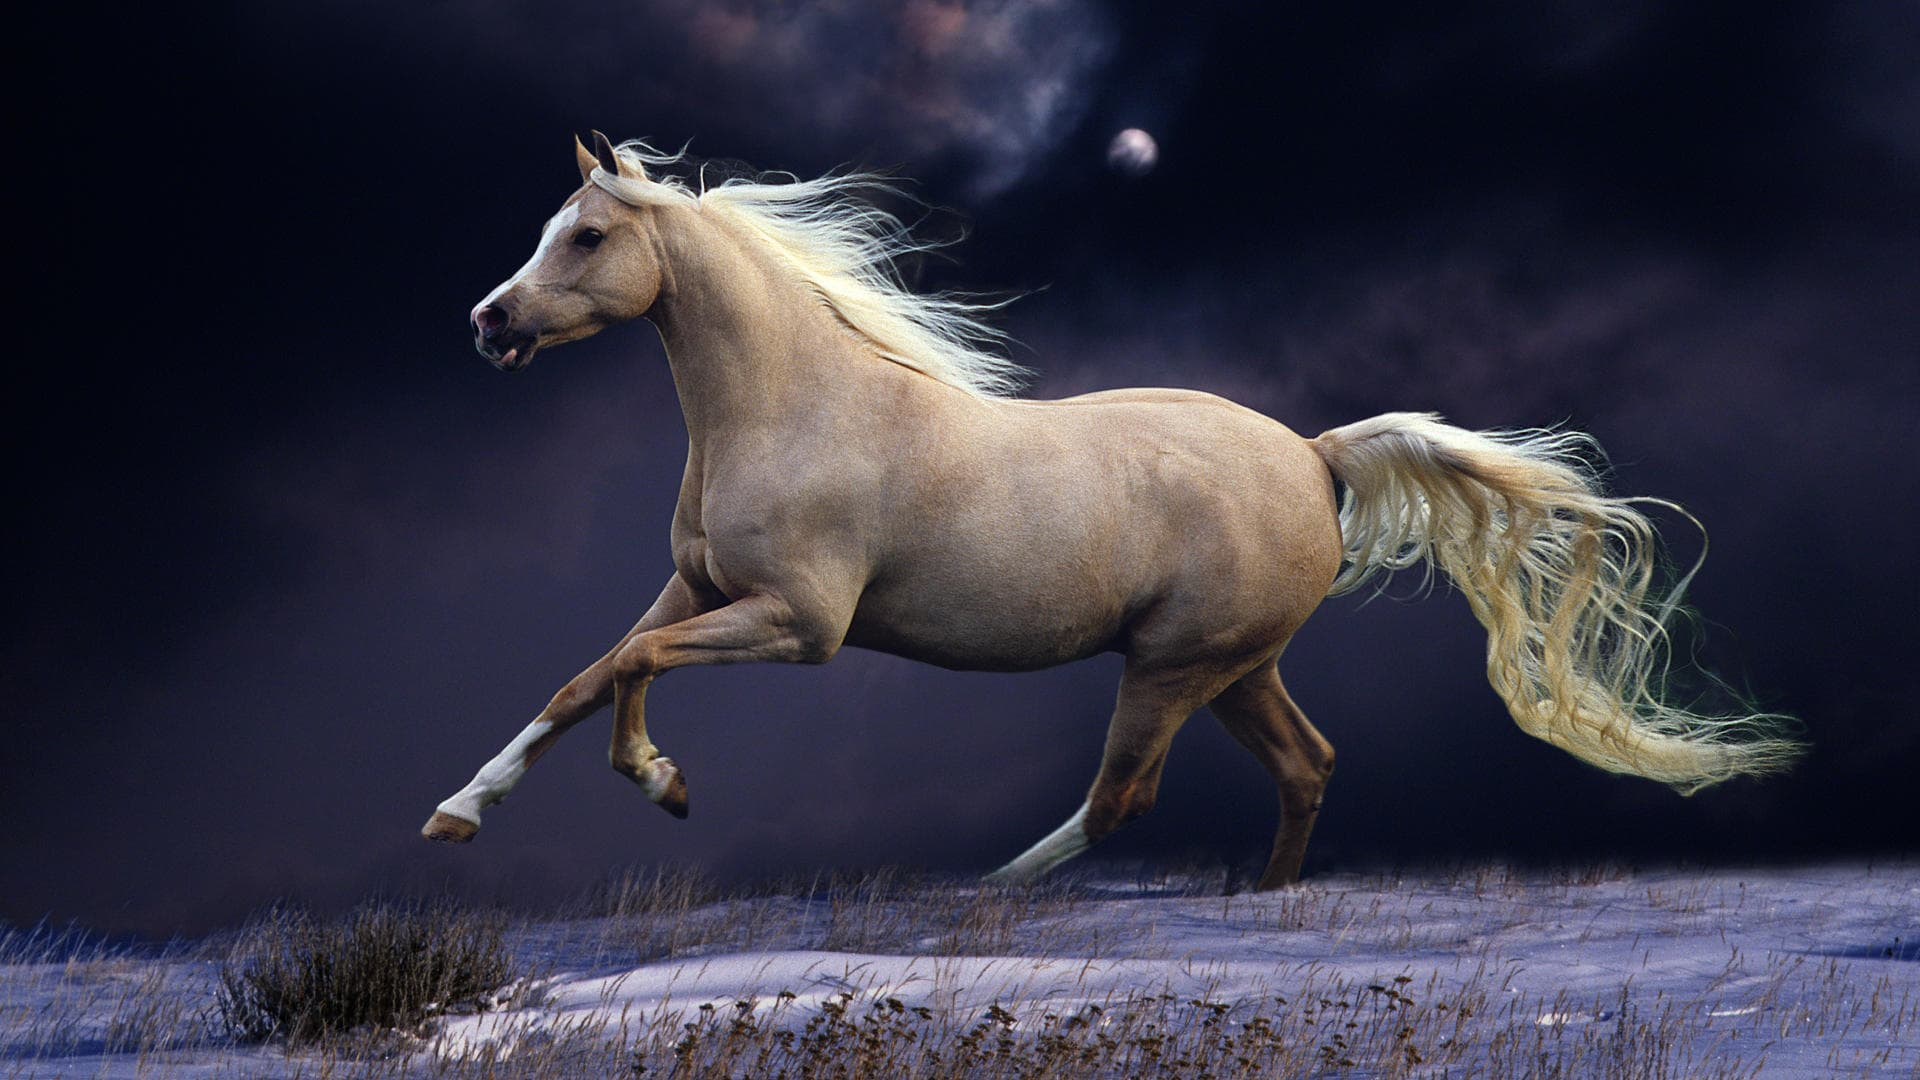 Horse Backgrounds Horse Wallpaper